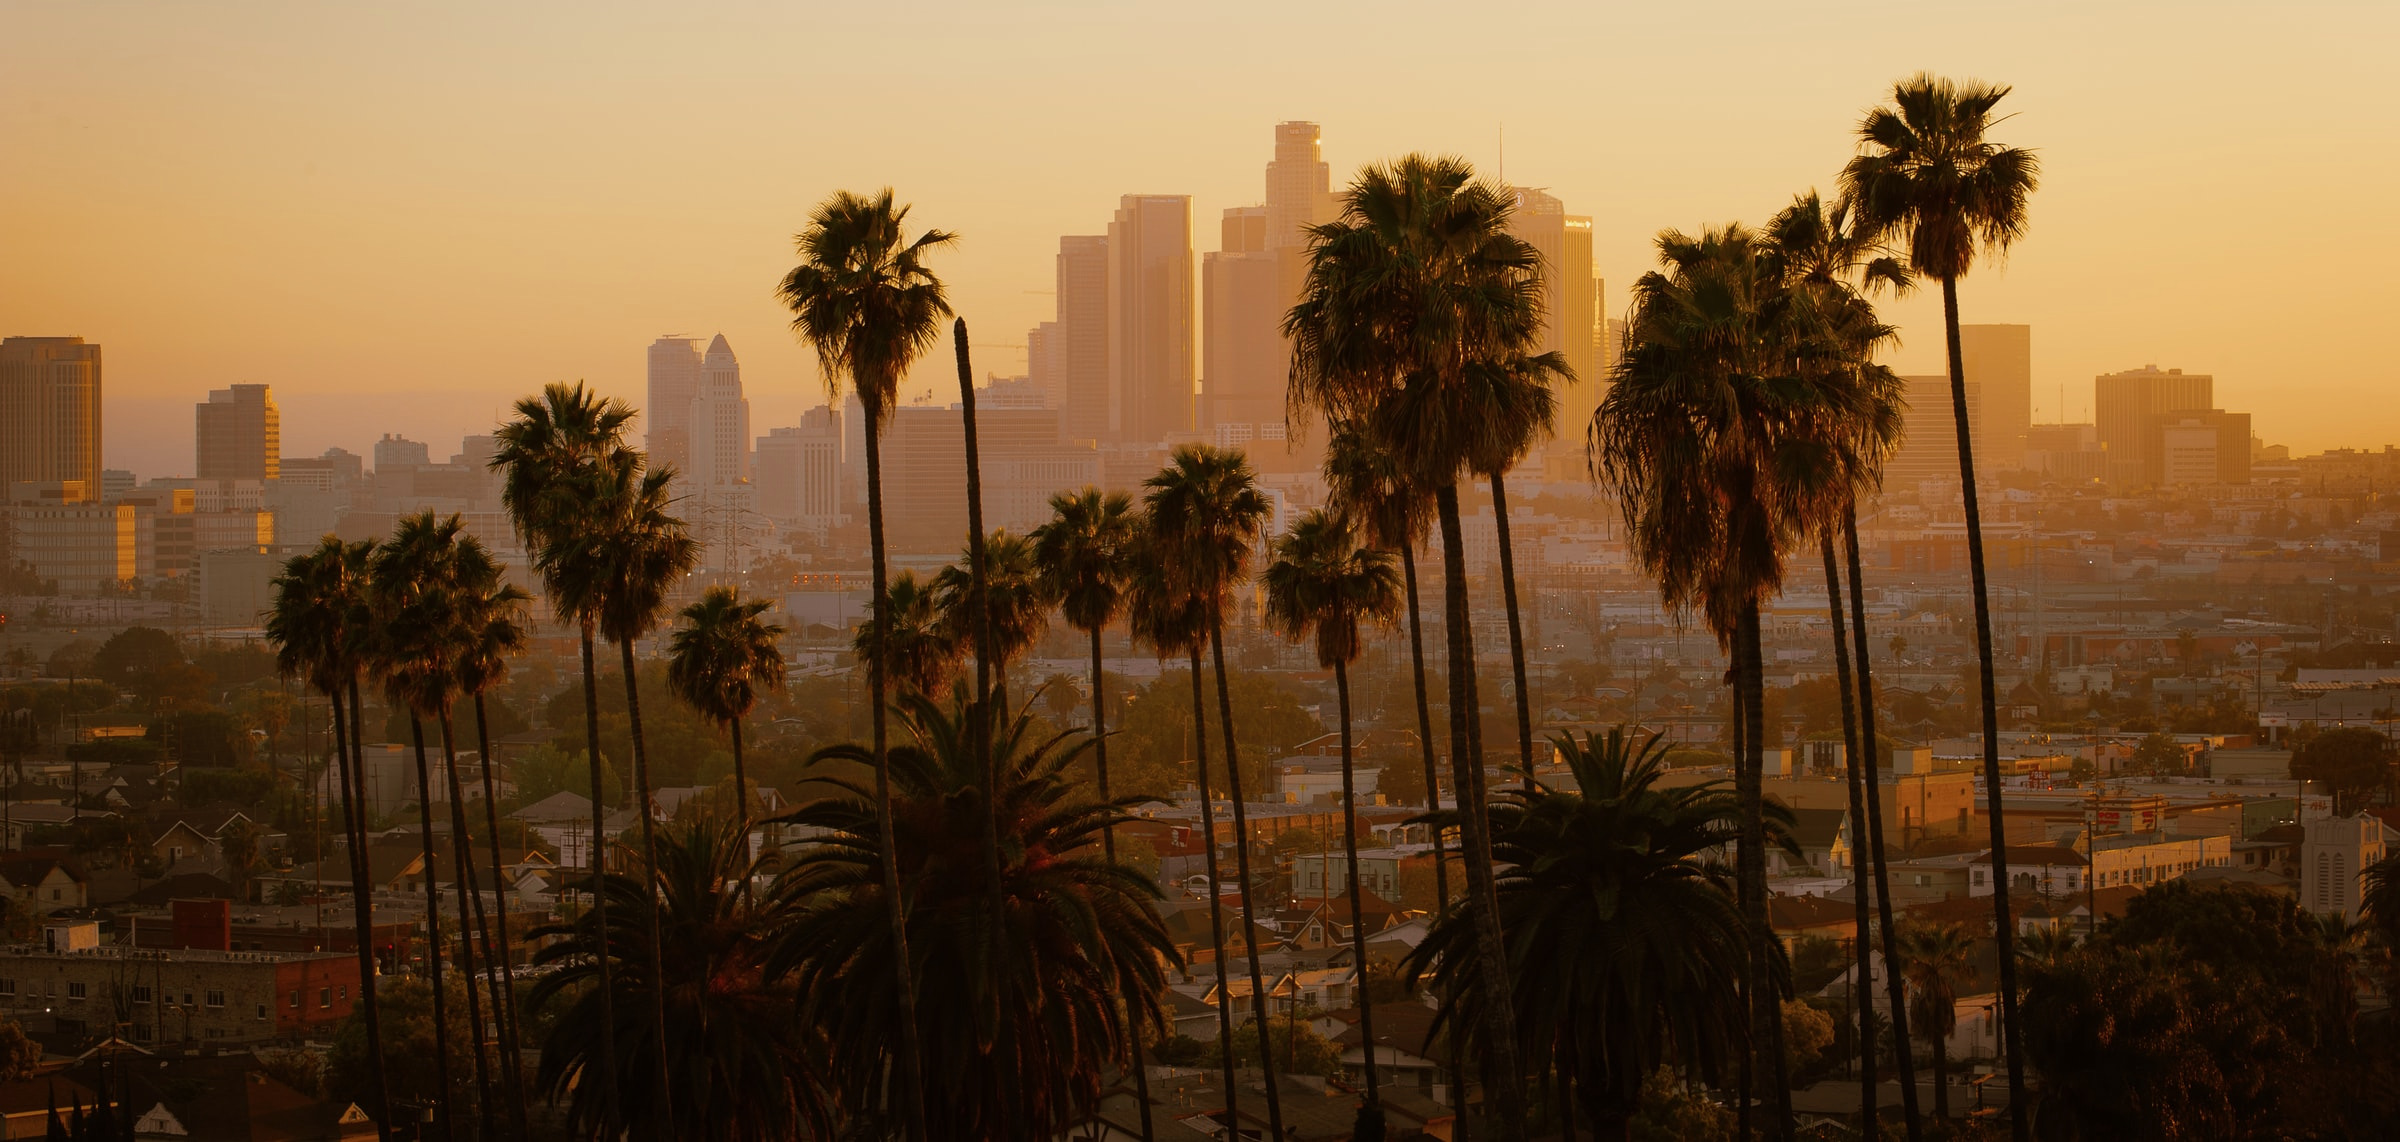 I am pleased to announce DoorDash's newest engineering office, located in Los Angeles, showing our commitment to the second largest city in the US,